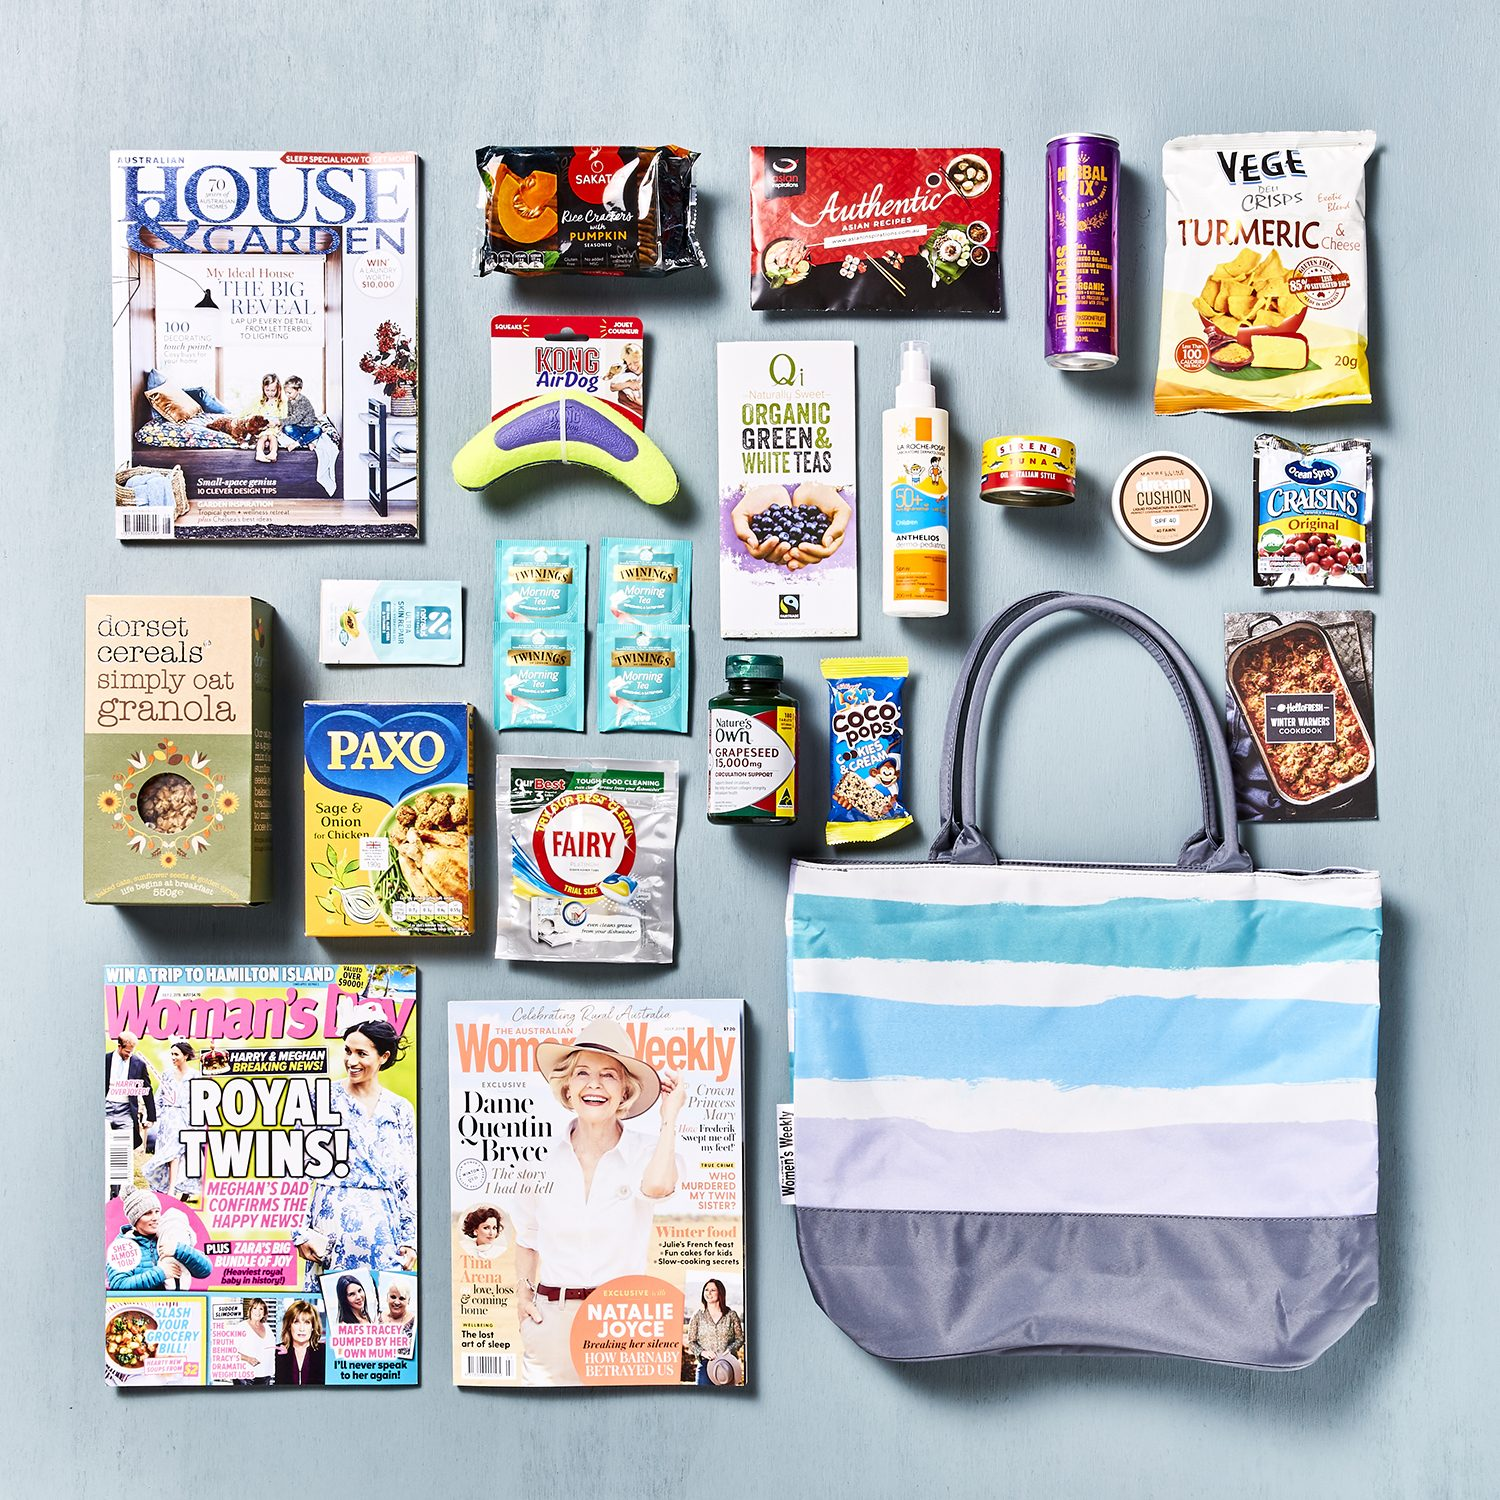 The classic Australian Women's Weekly Showbag is a must-have for Aussie women. It's the perfect choice for FMCG and Home and Lifestyle brands looking to target primary grocer buyers and early adopters of new supermarket products. Get into their hands and their hearts by participating in the Australian Women's Weekly Showbag with Chicane Marketing.